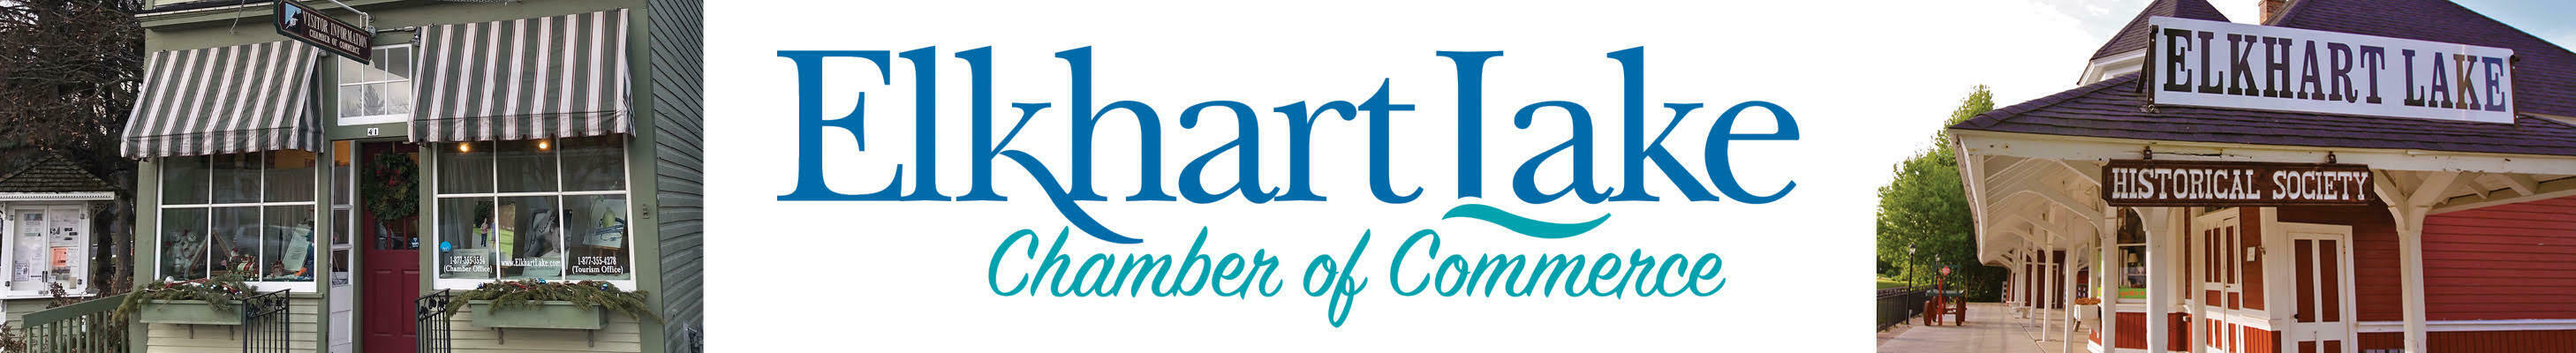 Elkhart Lake Chamber of Commerce